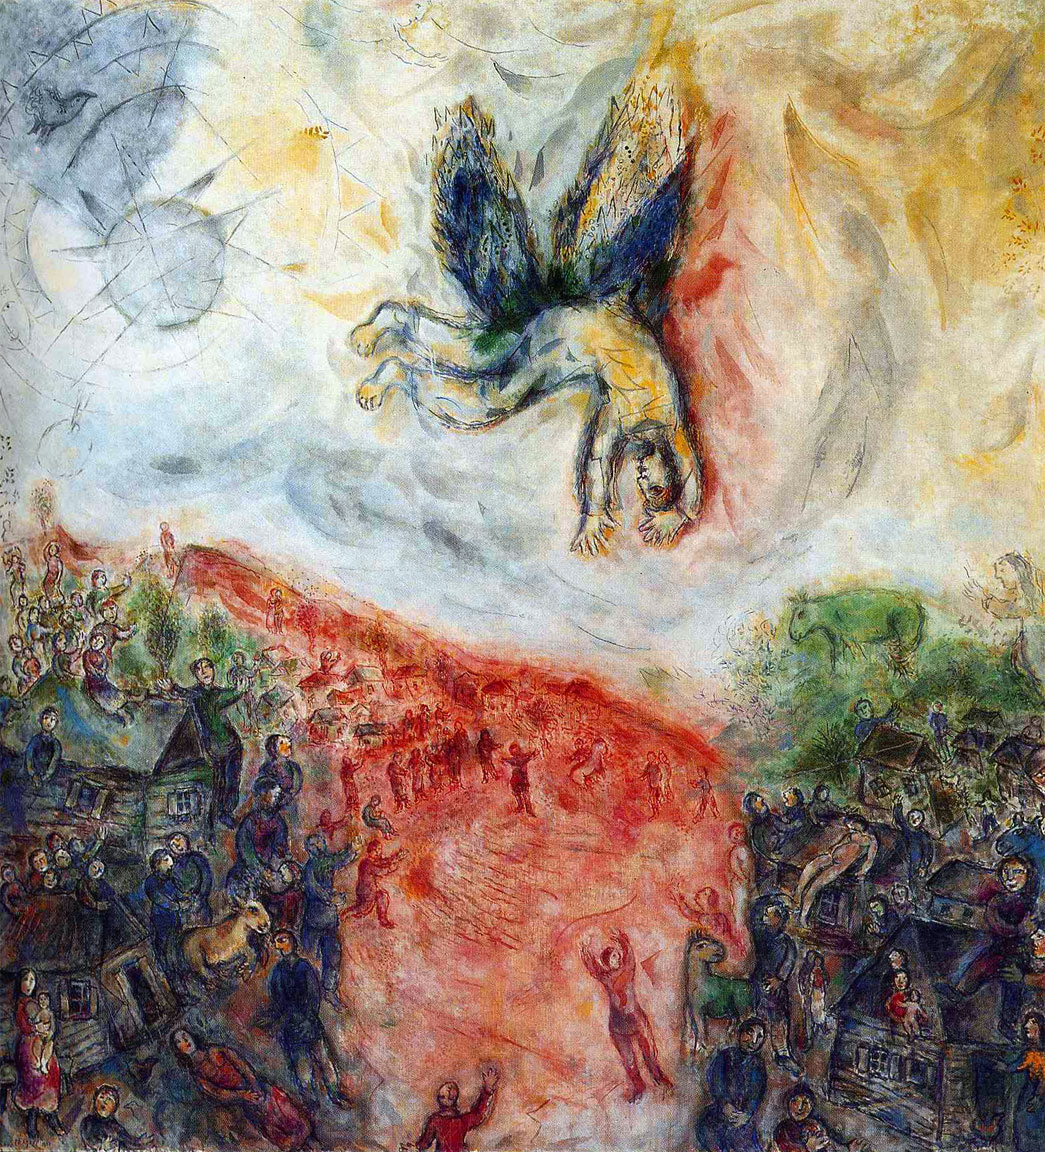 The Fall of Icarus (La Caduta di Icaro, Marc Chagall, 1975)